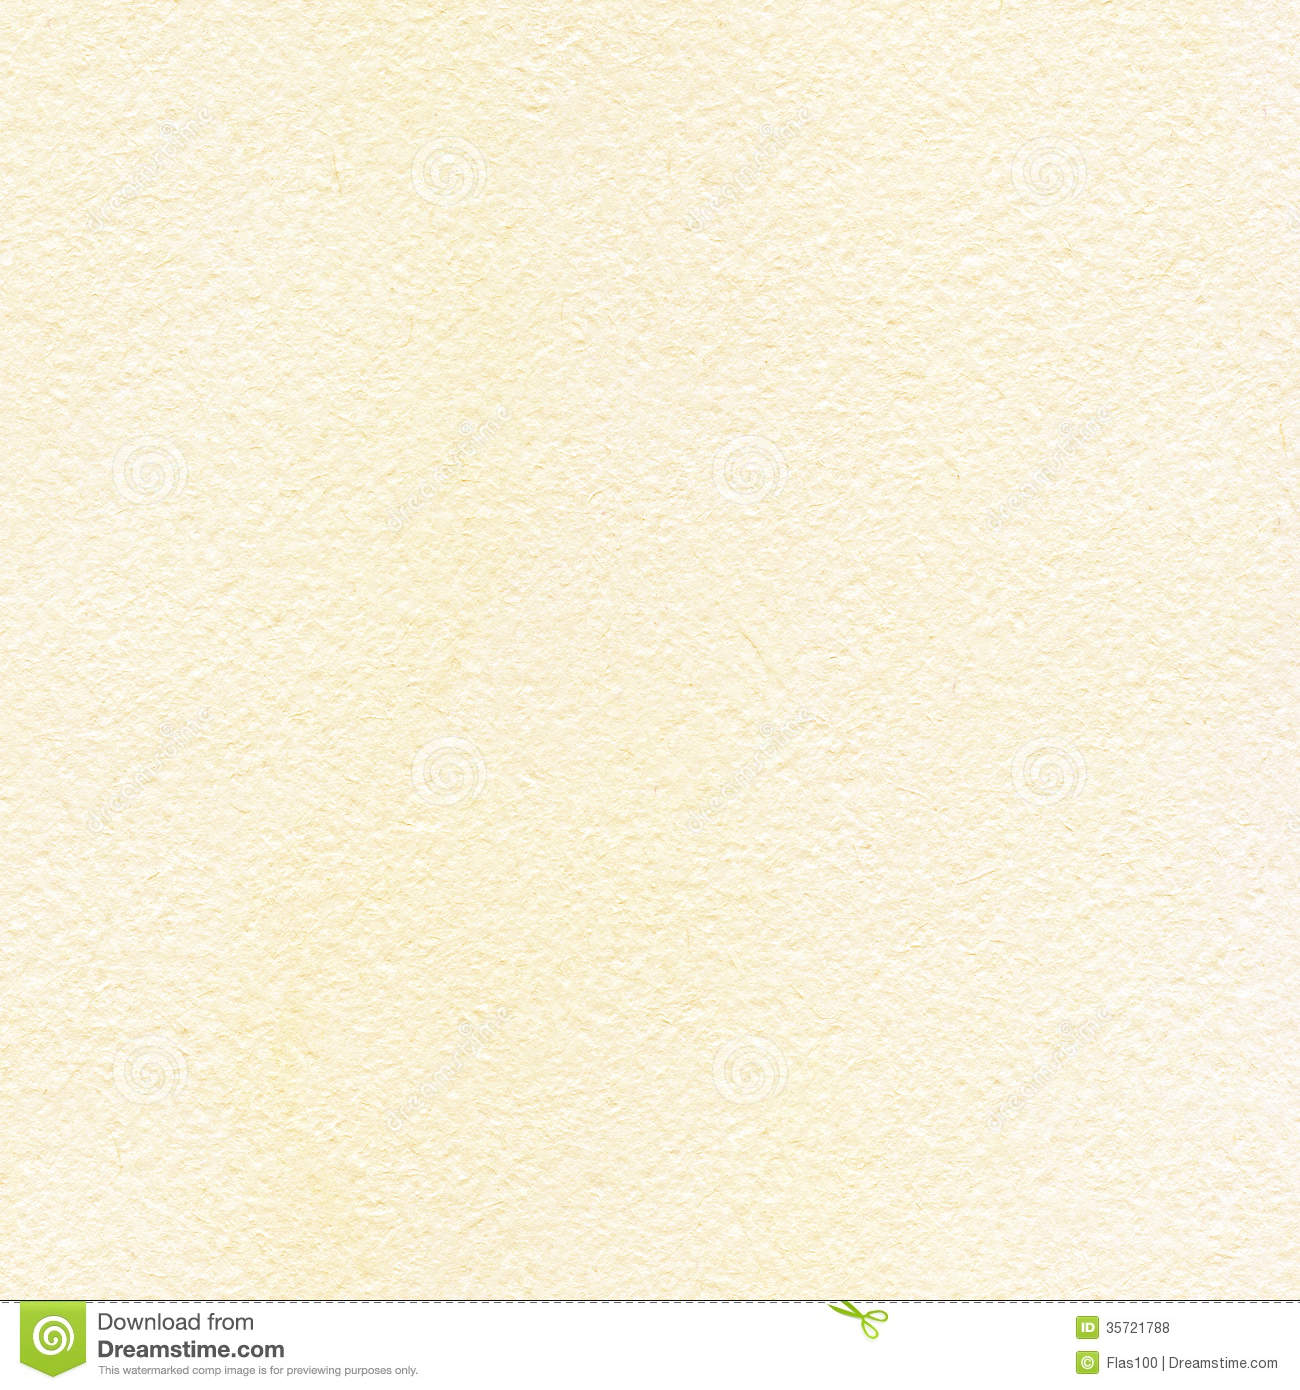 Light Beige Color For Living Room: Abstract Beige Watercolor Background. Royalty Free Stock